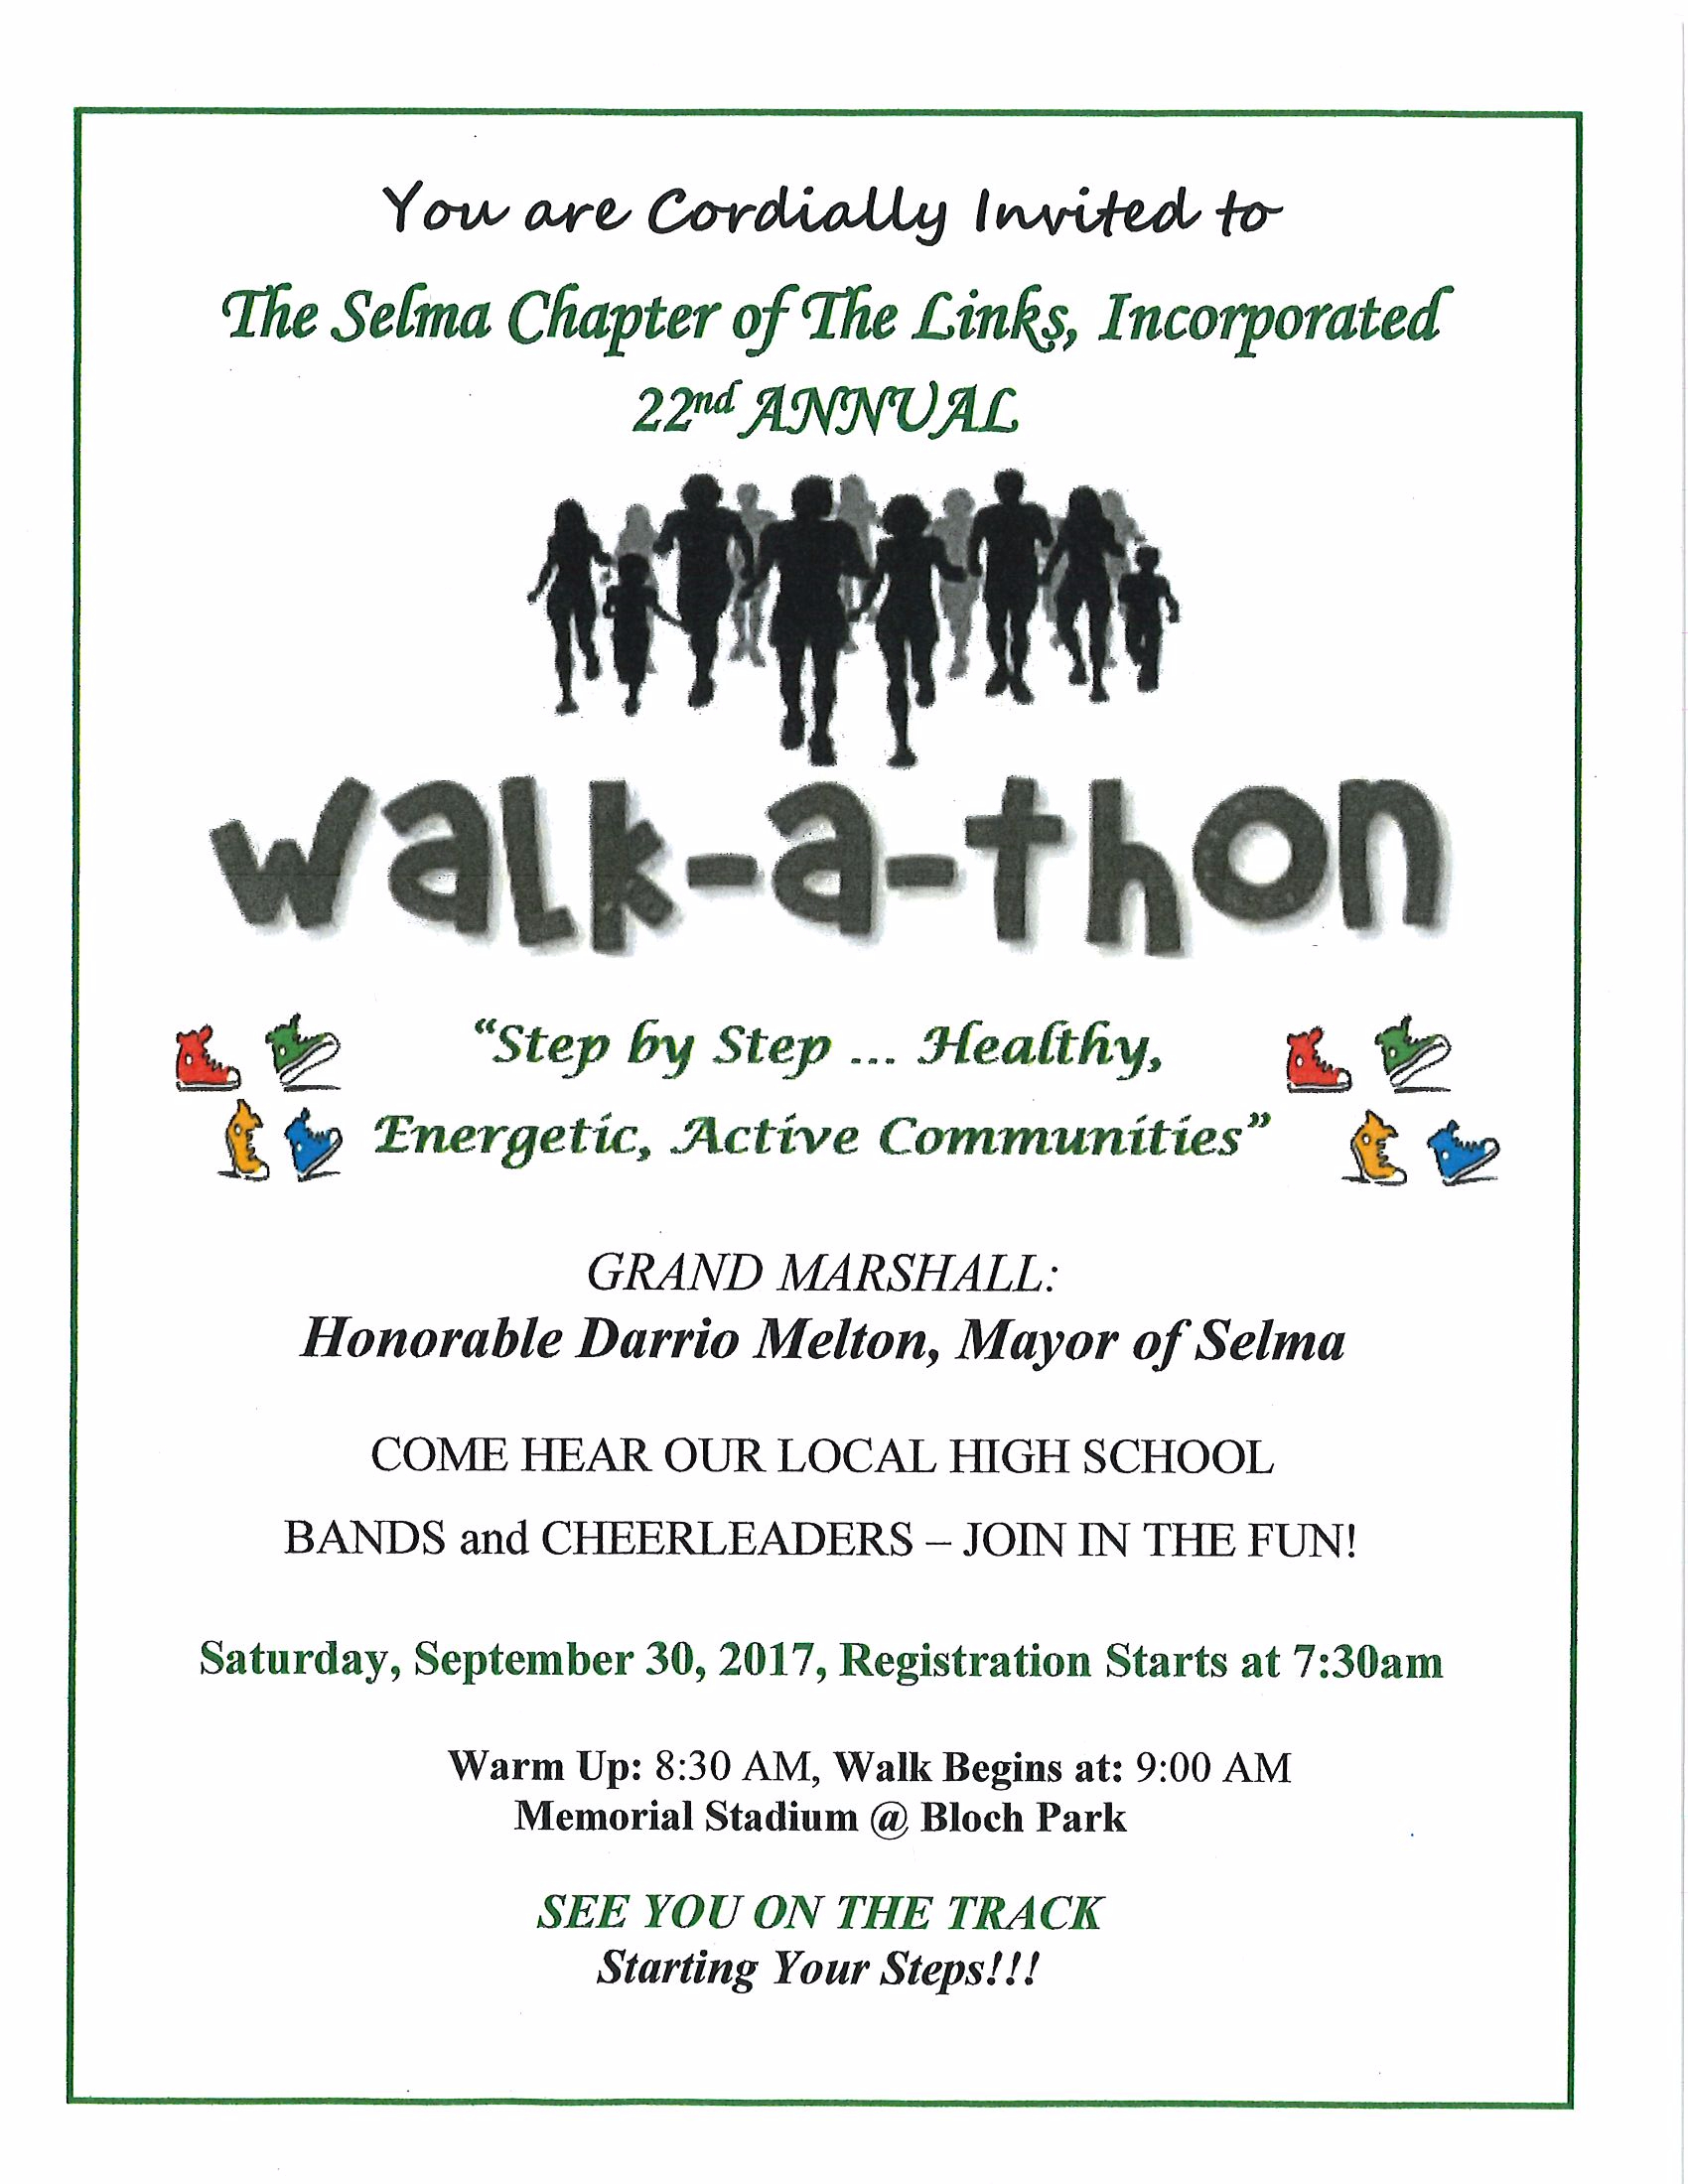 Link Walk a thon Page 1